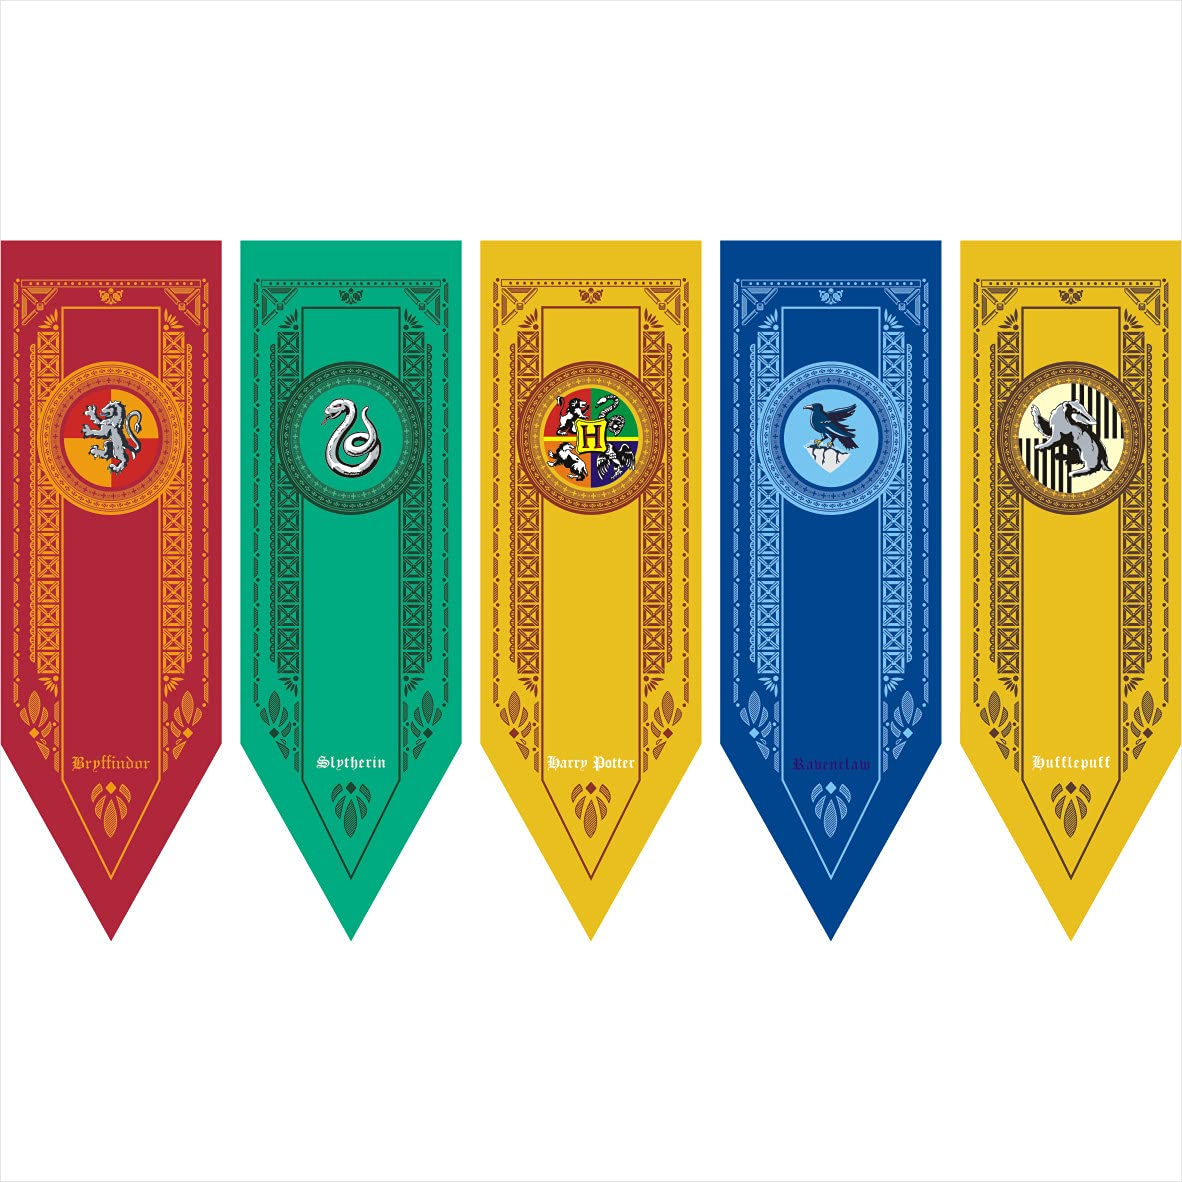 Harry Potter Hogwarts Gryffindor Slytherin Hufflepuff Ravenclaw Collection House Banner Wall Decoration Indoor Outdoor Party Holiday Decoration Flag (5pcs, 18x59inch)